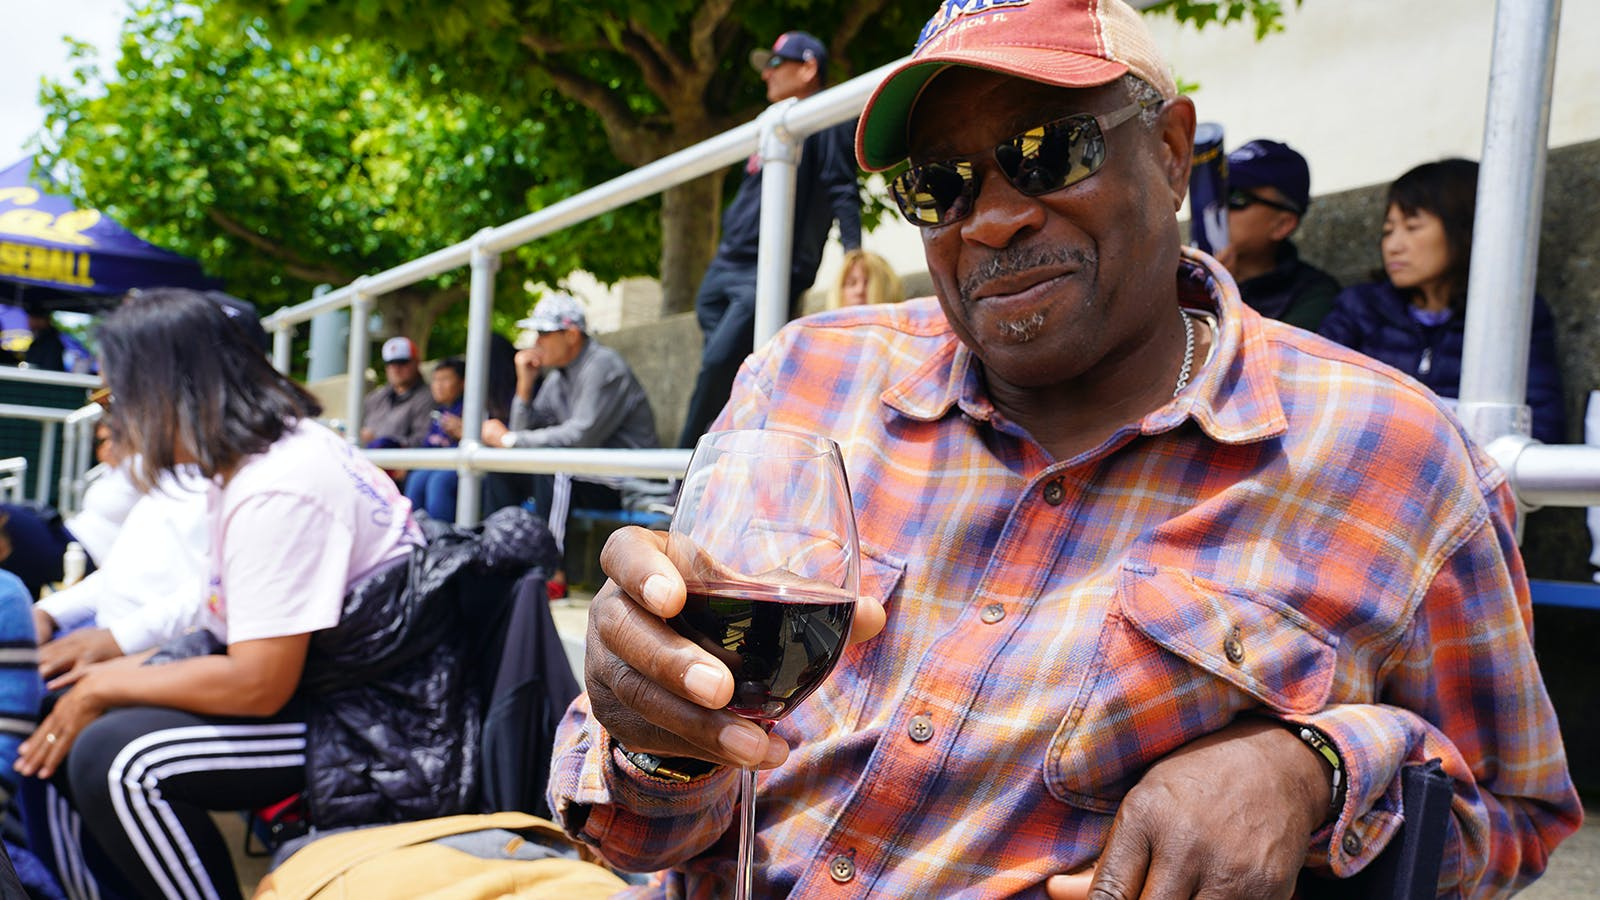 Wine Talk: Dusty Baker's Homage to Hank Aaron